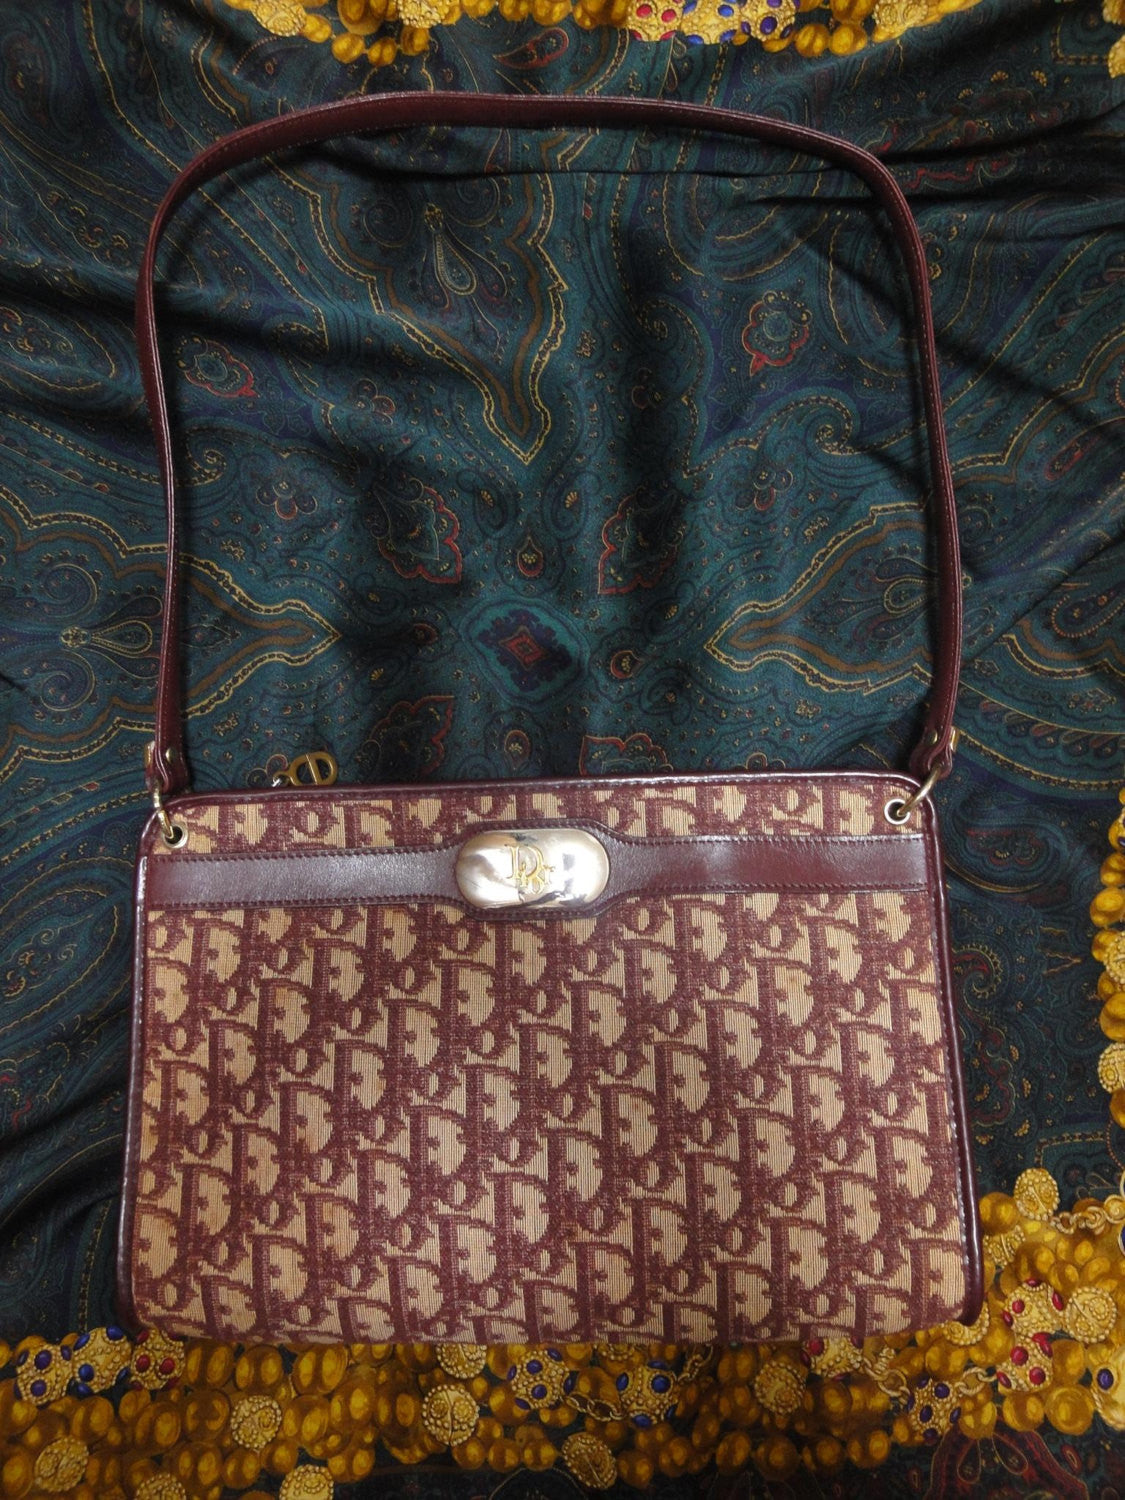 80's Christian Dior Vintage wine monogram jacquard and leather clutch shoulder bag with CD motif at front.